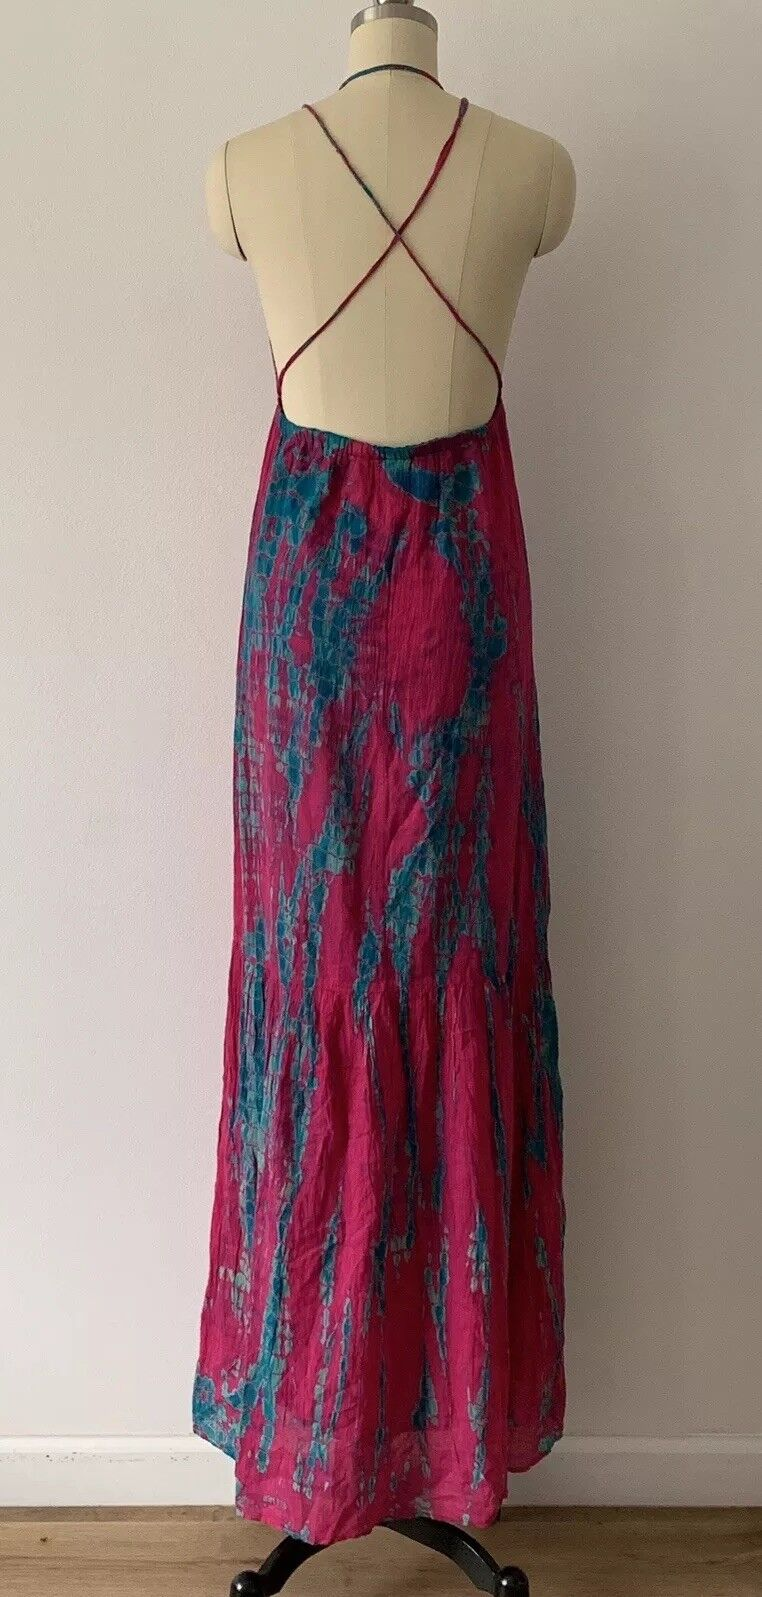 Daughters Of The Revolution Tie Dyed Maxi Dress Size 2 2 2 c20d7d